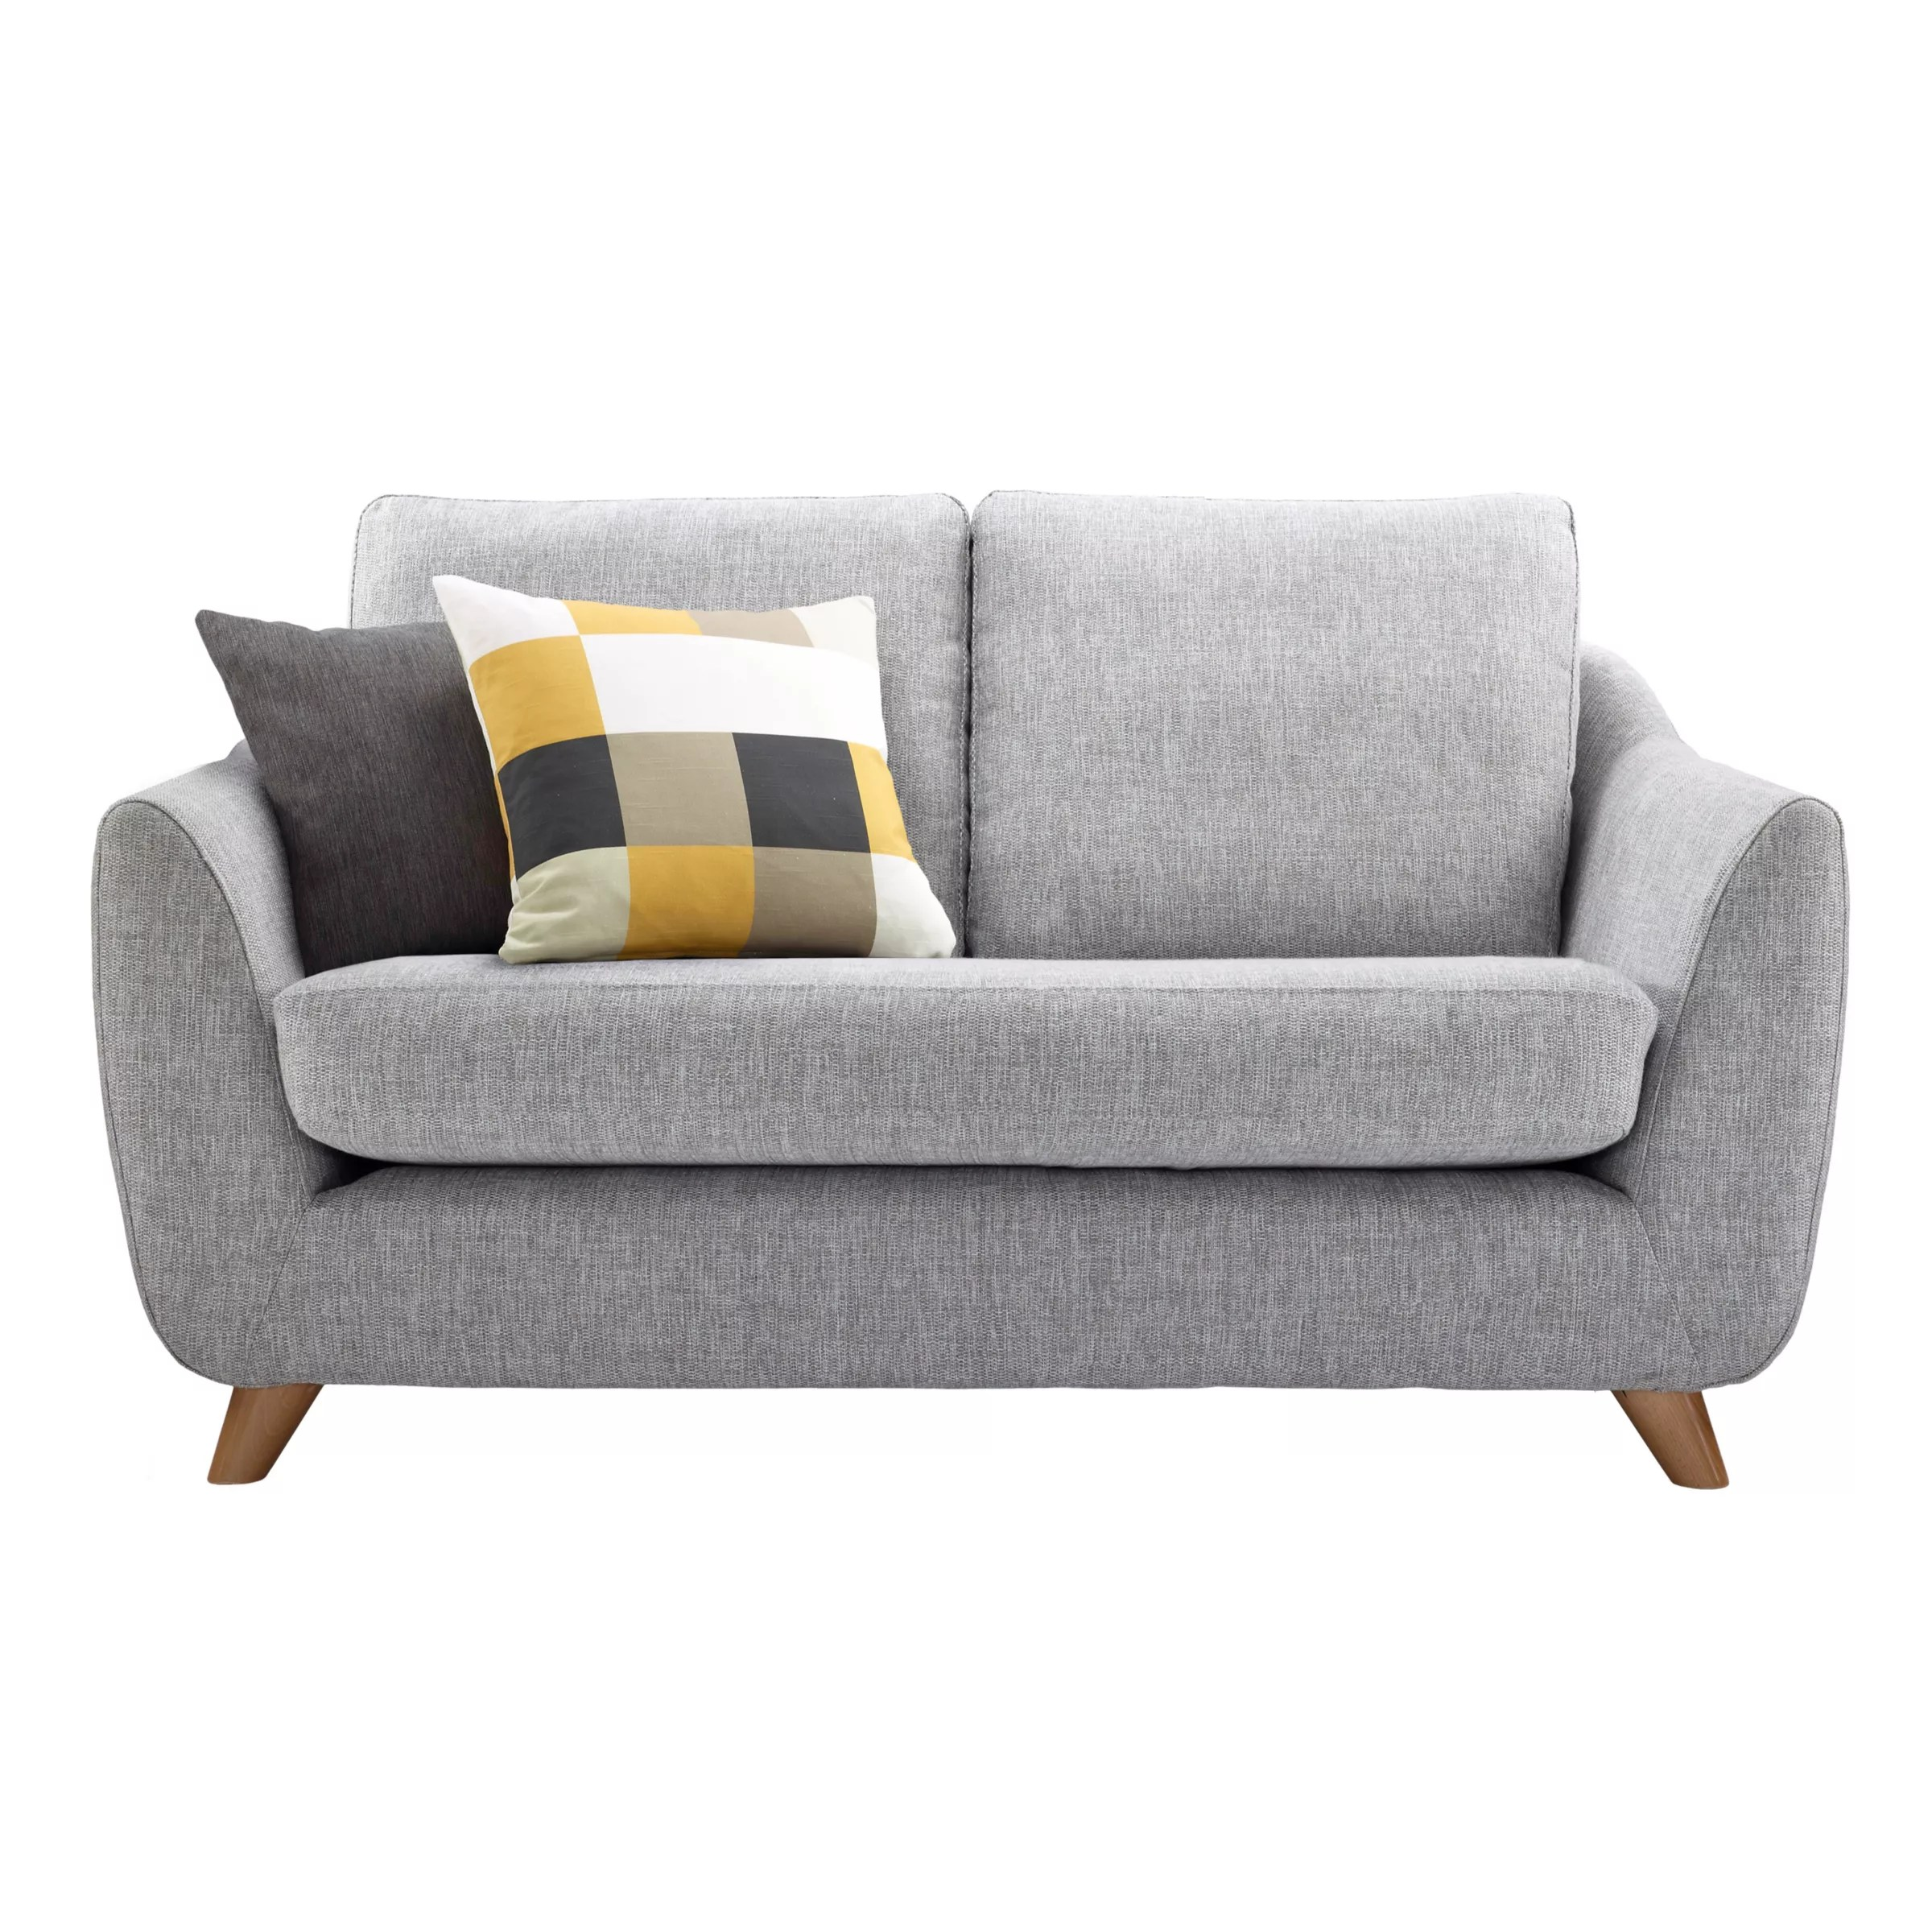 Bettsofa Vintage G Plan Vintage The Sixty Seven Small Sofa Marl Grey At John Lewis